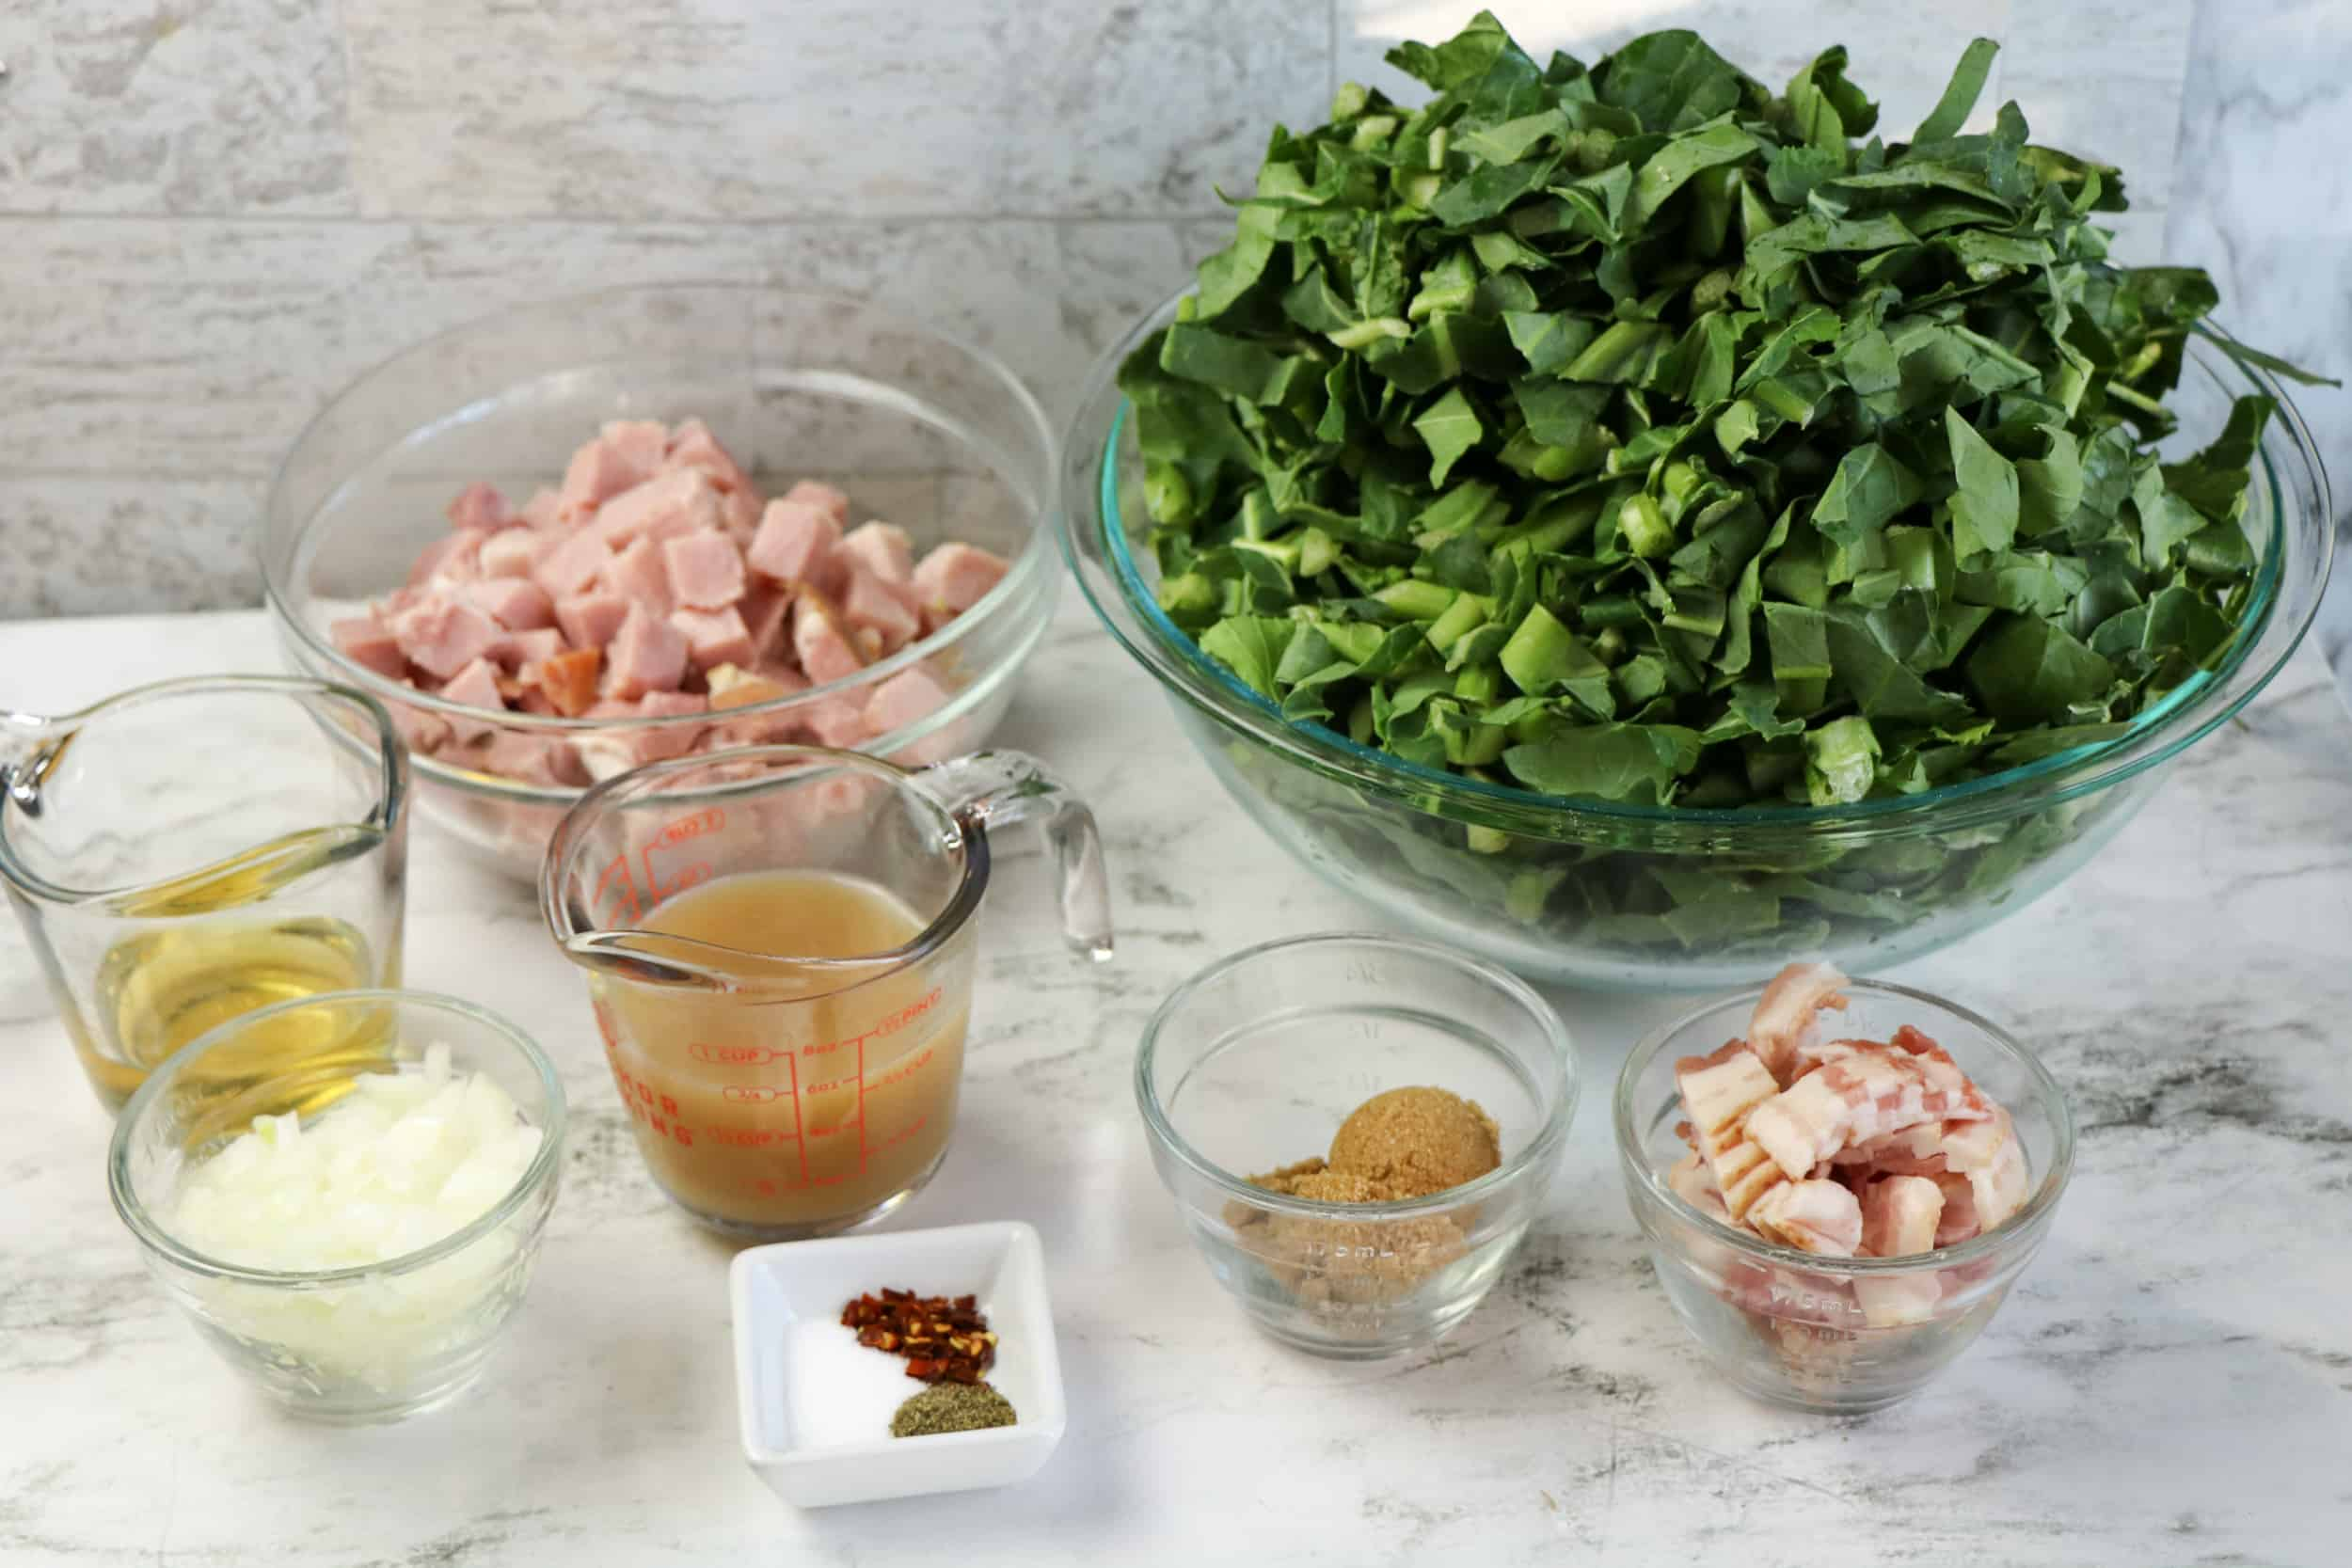 Ingredients for Instant Pot Collard Greens